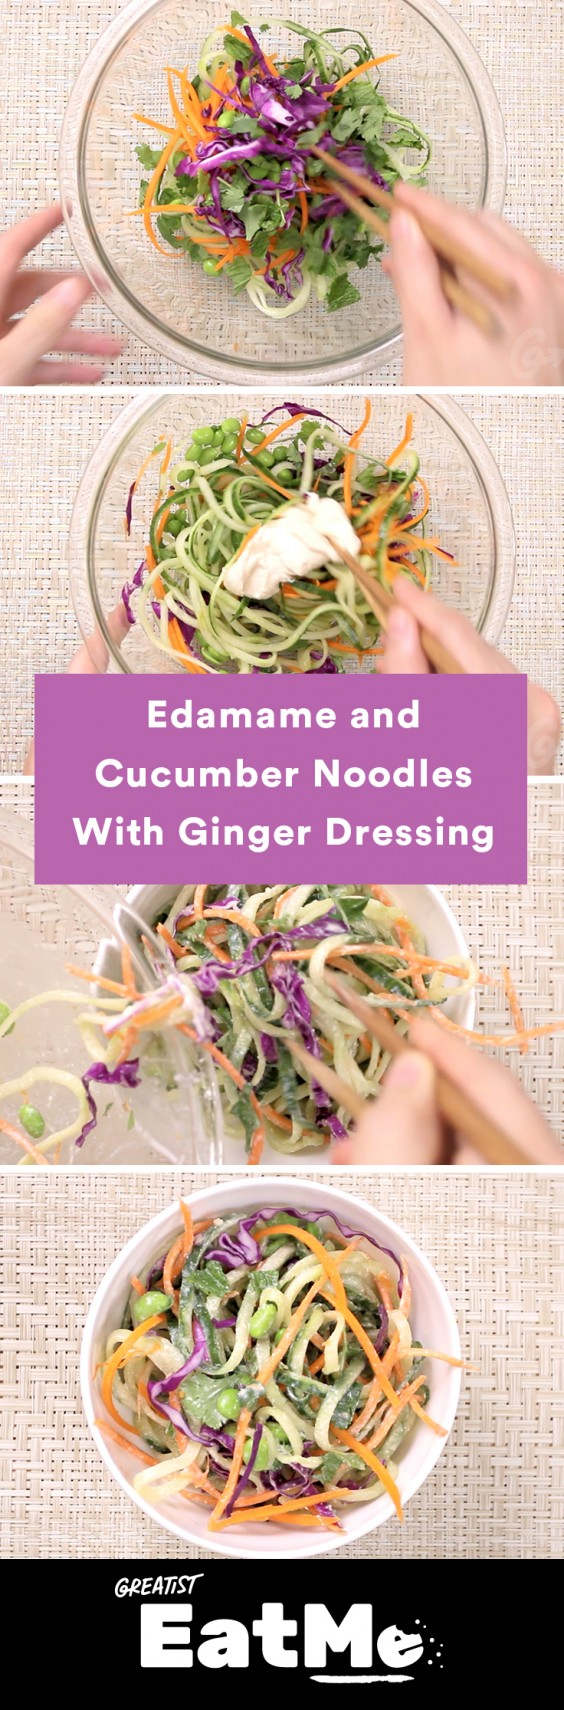 Eat Me Video: Edamame and Cucumber Noodles With Ginger Dressing